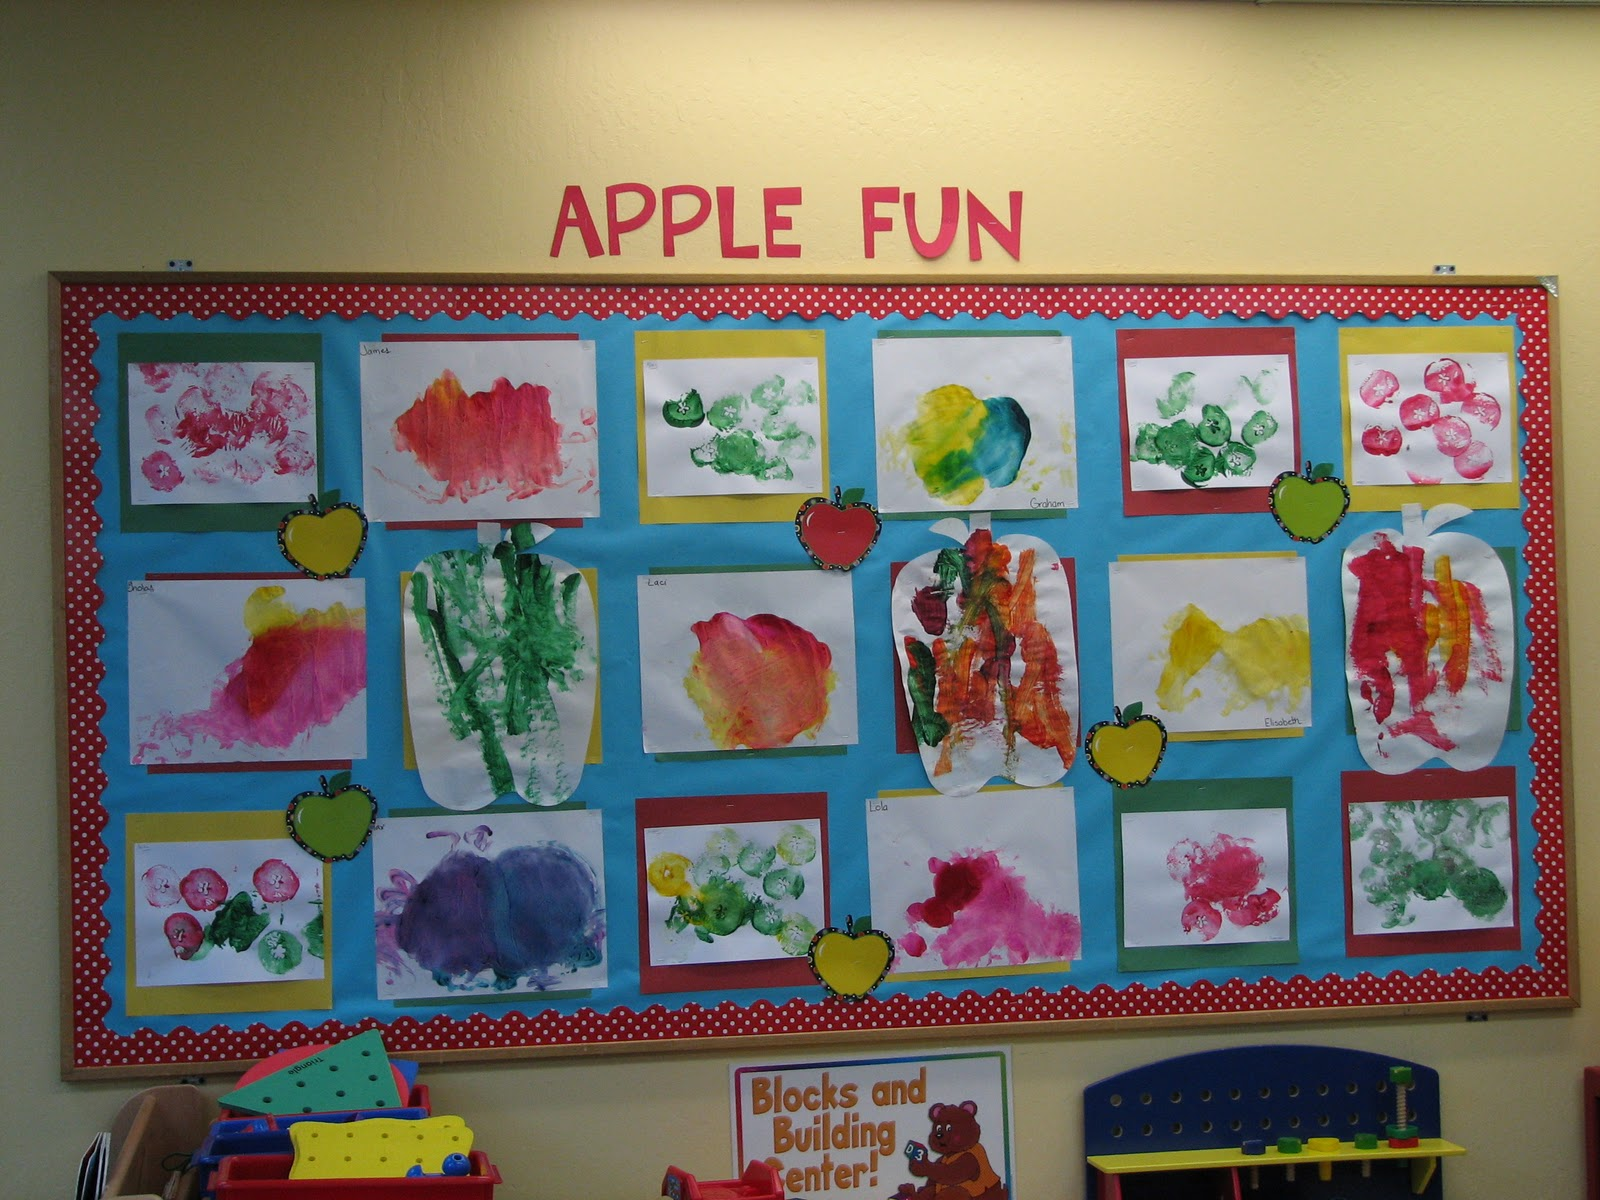 Classroom Ideas For 1 Year Olds : Preschool ideas for year olds apples